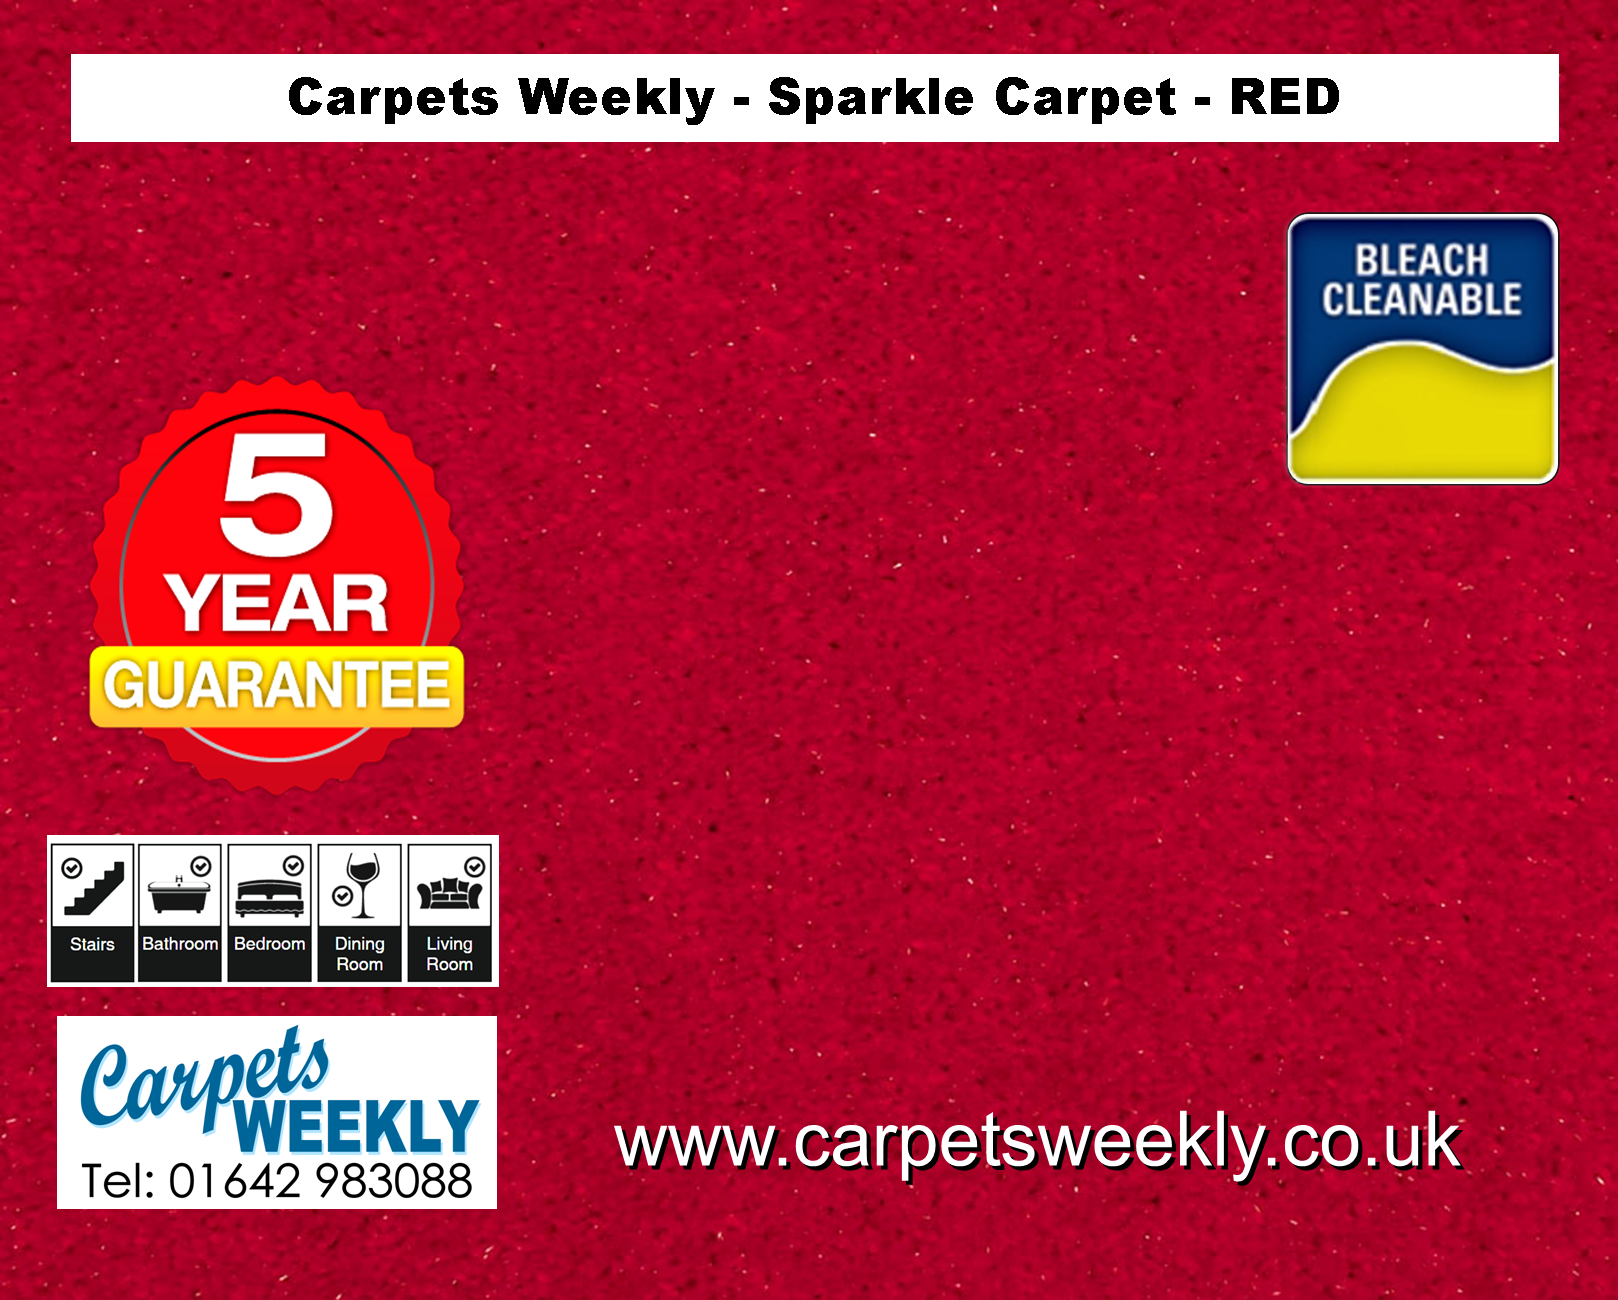 Red Sparkle Carpet from Carpets Weekly